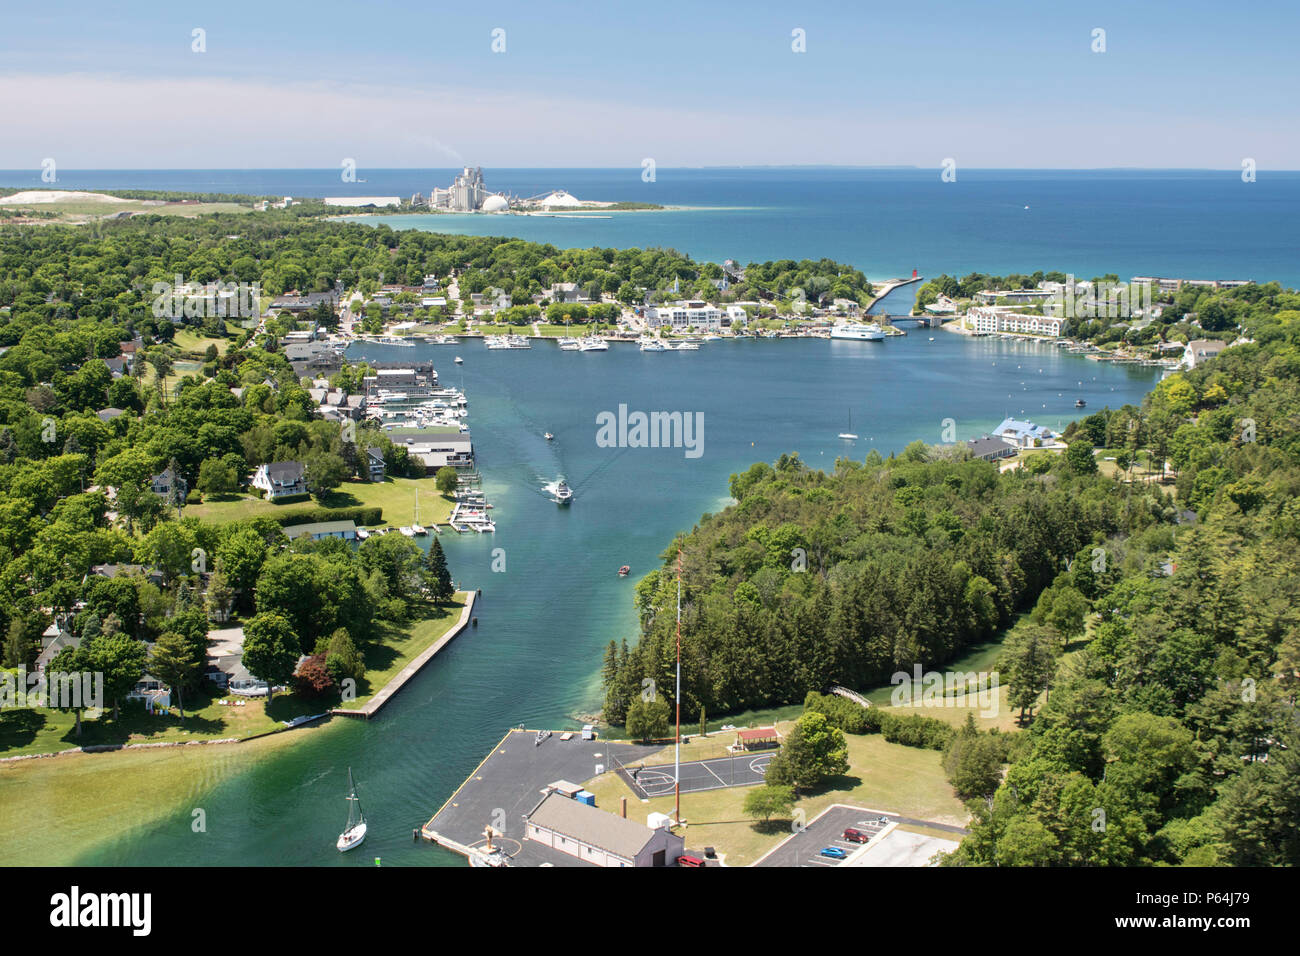 Aerial view of the Pine River leading to Round Lake with Charlevoix and Lake Michigan in the background, looking west. - Stock Image